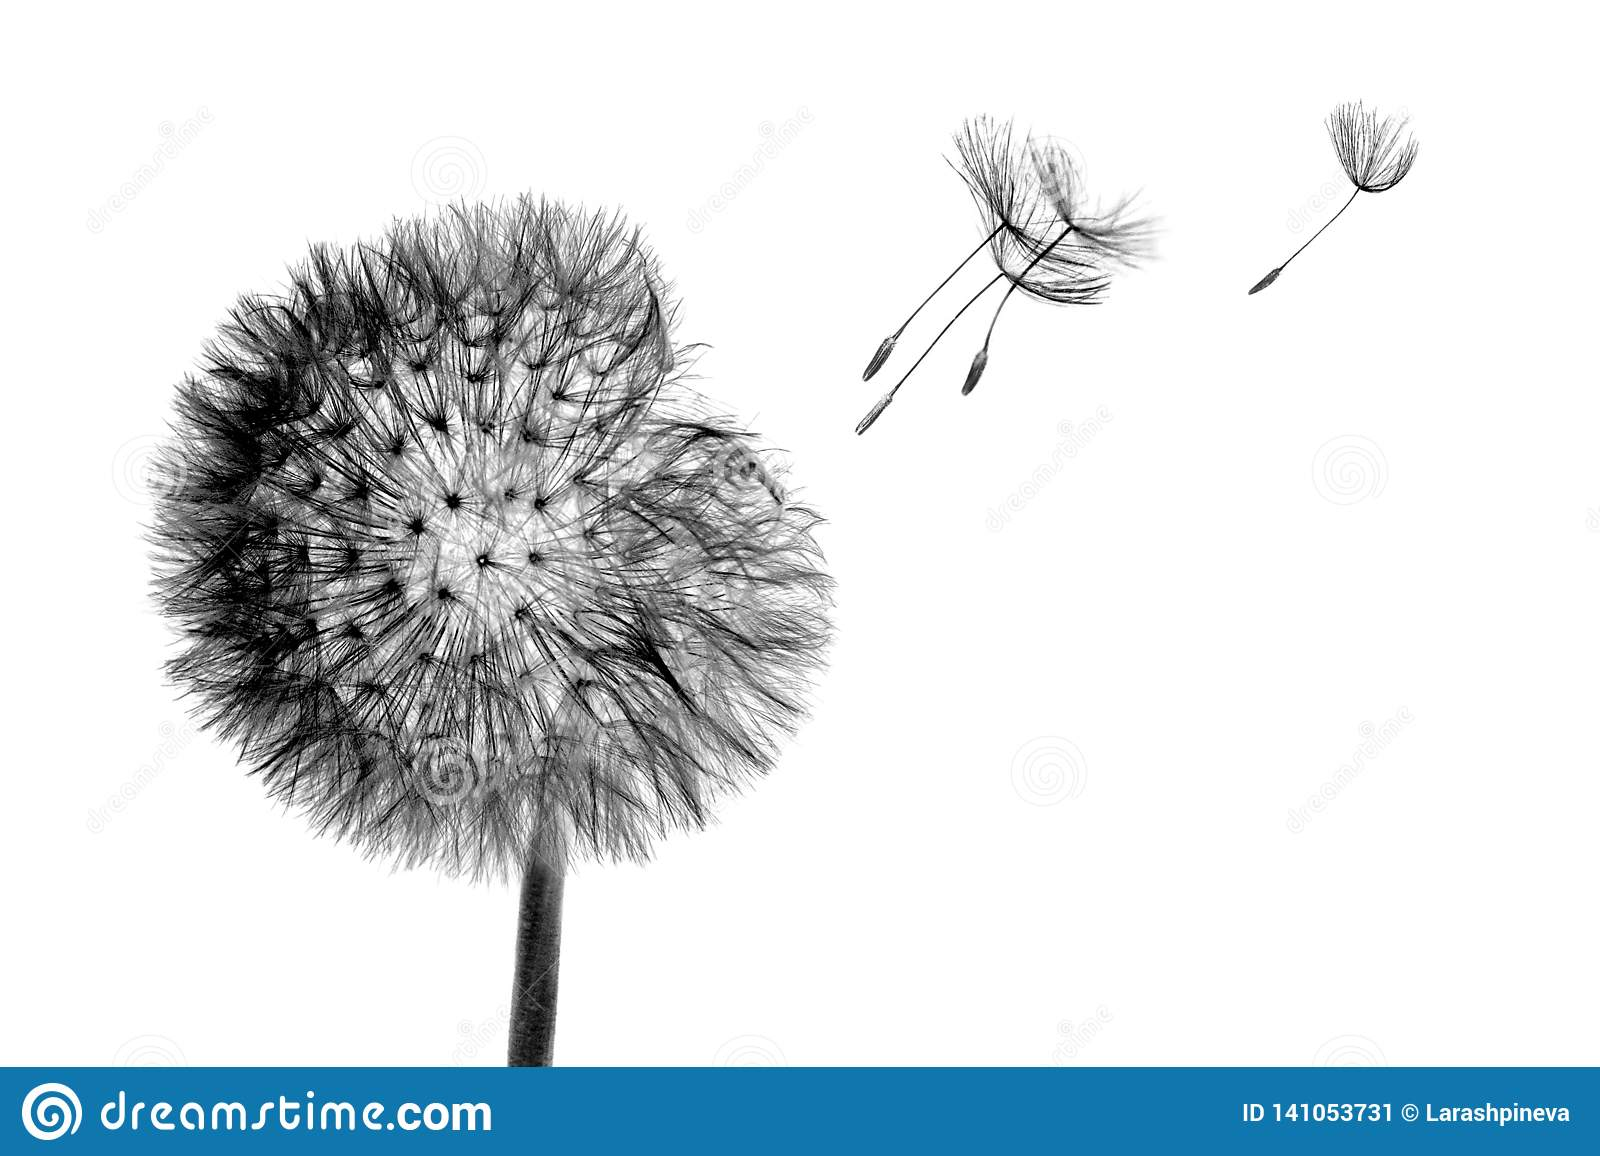 Black bloom head Dandelion flower with flying seeds in wind isolated on white background